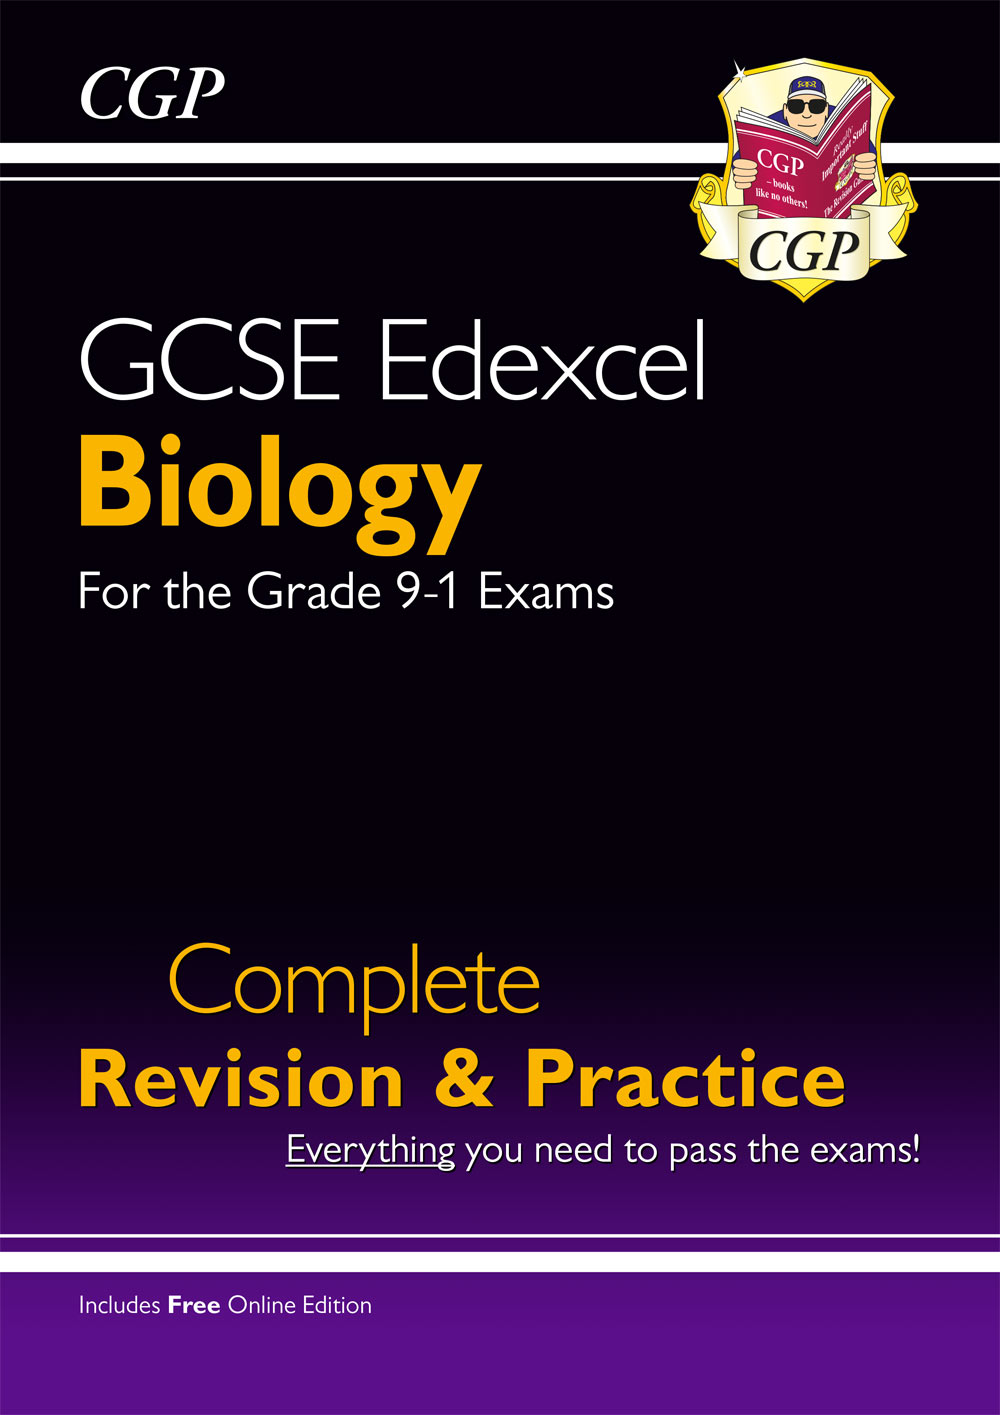 BES41 - Grade 9-1 GCSE Biology Edexcel Complete Revision & Practice with Online Edition